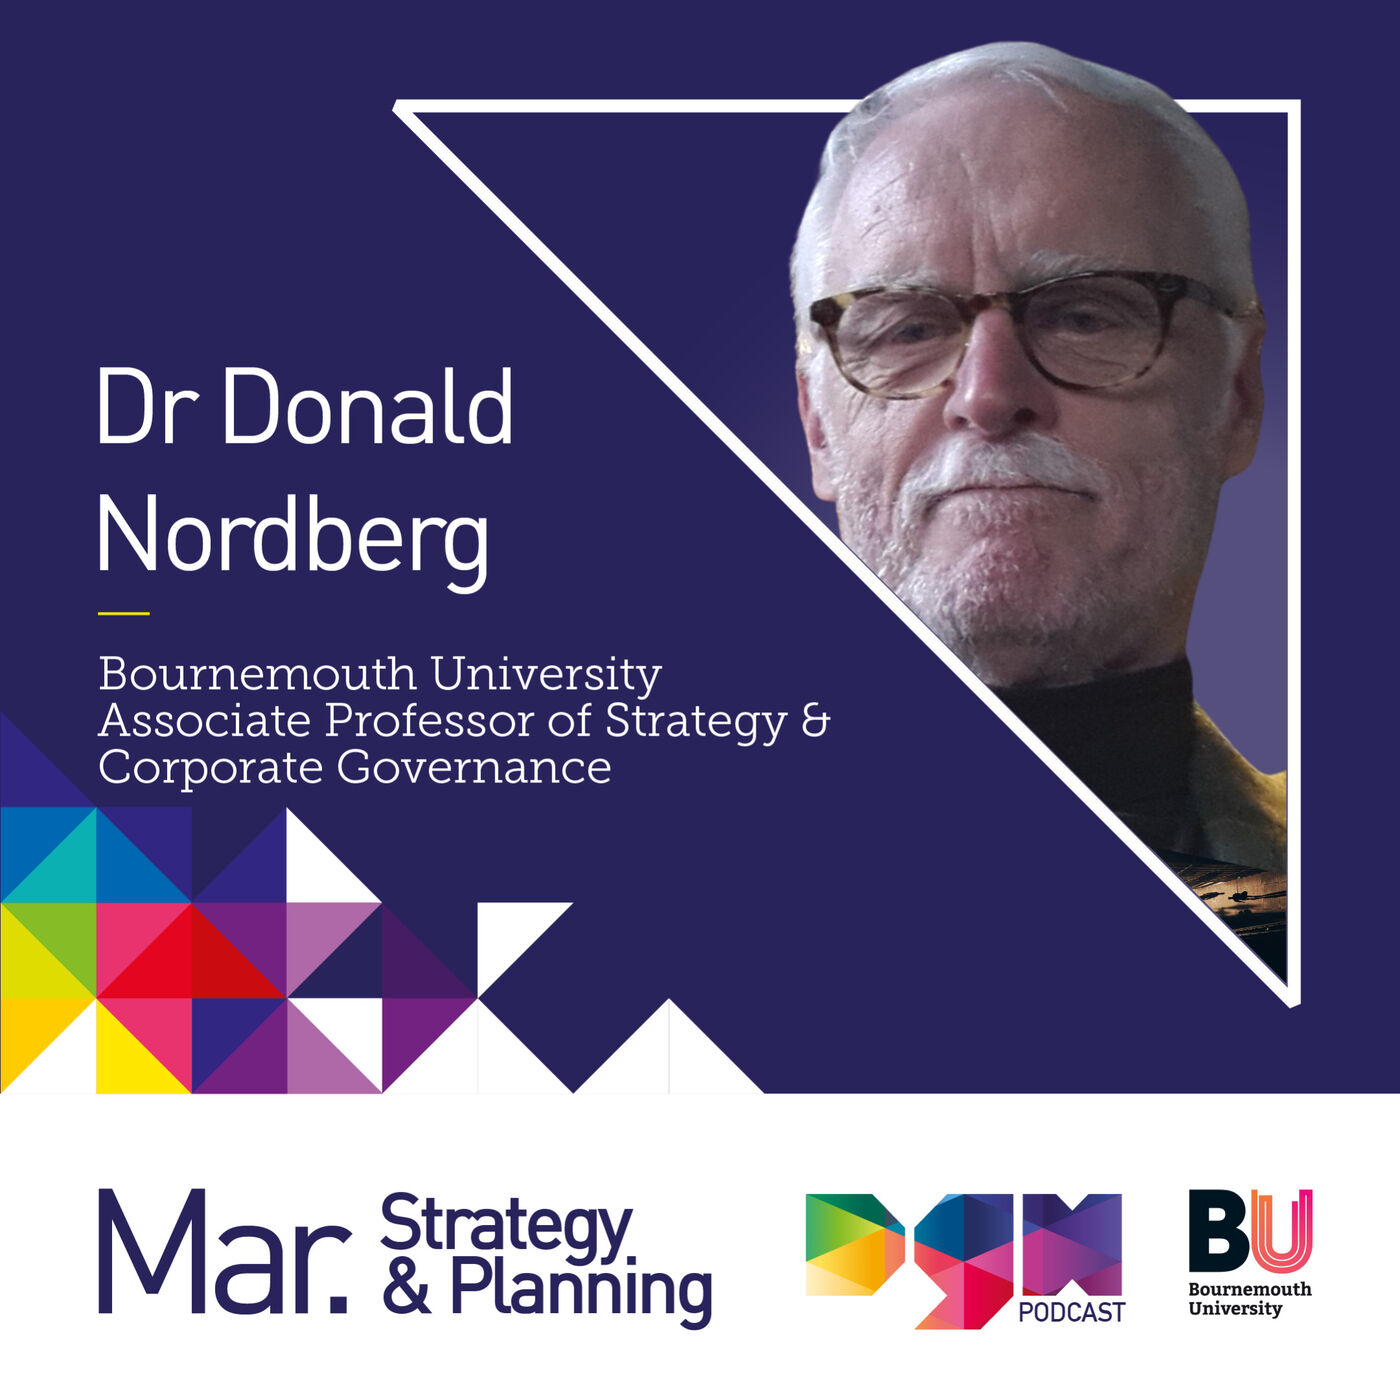 Steering your business to success with Dr Donald Nordberg, Associate Professor at Bournemouth University #S2E6